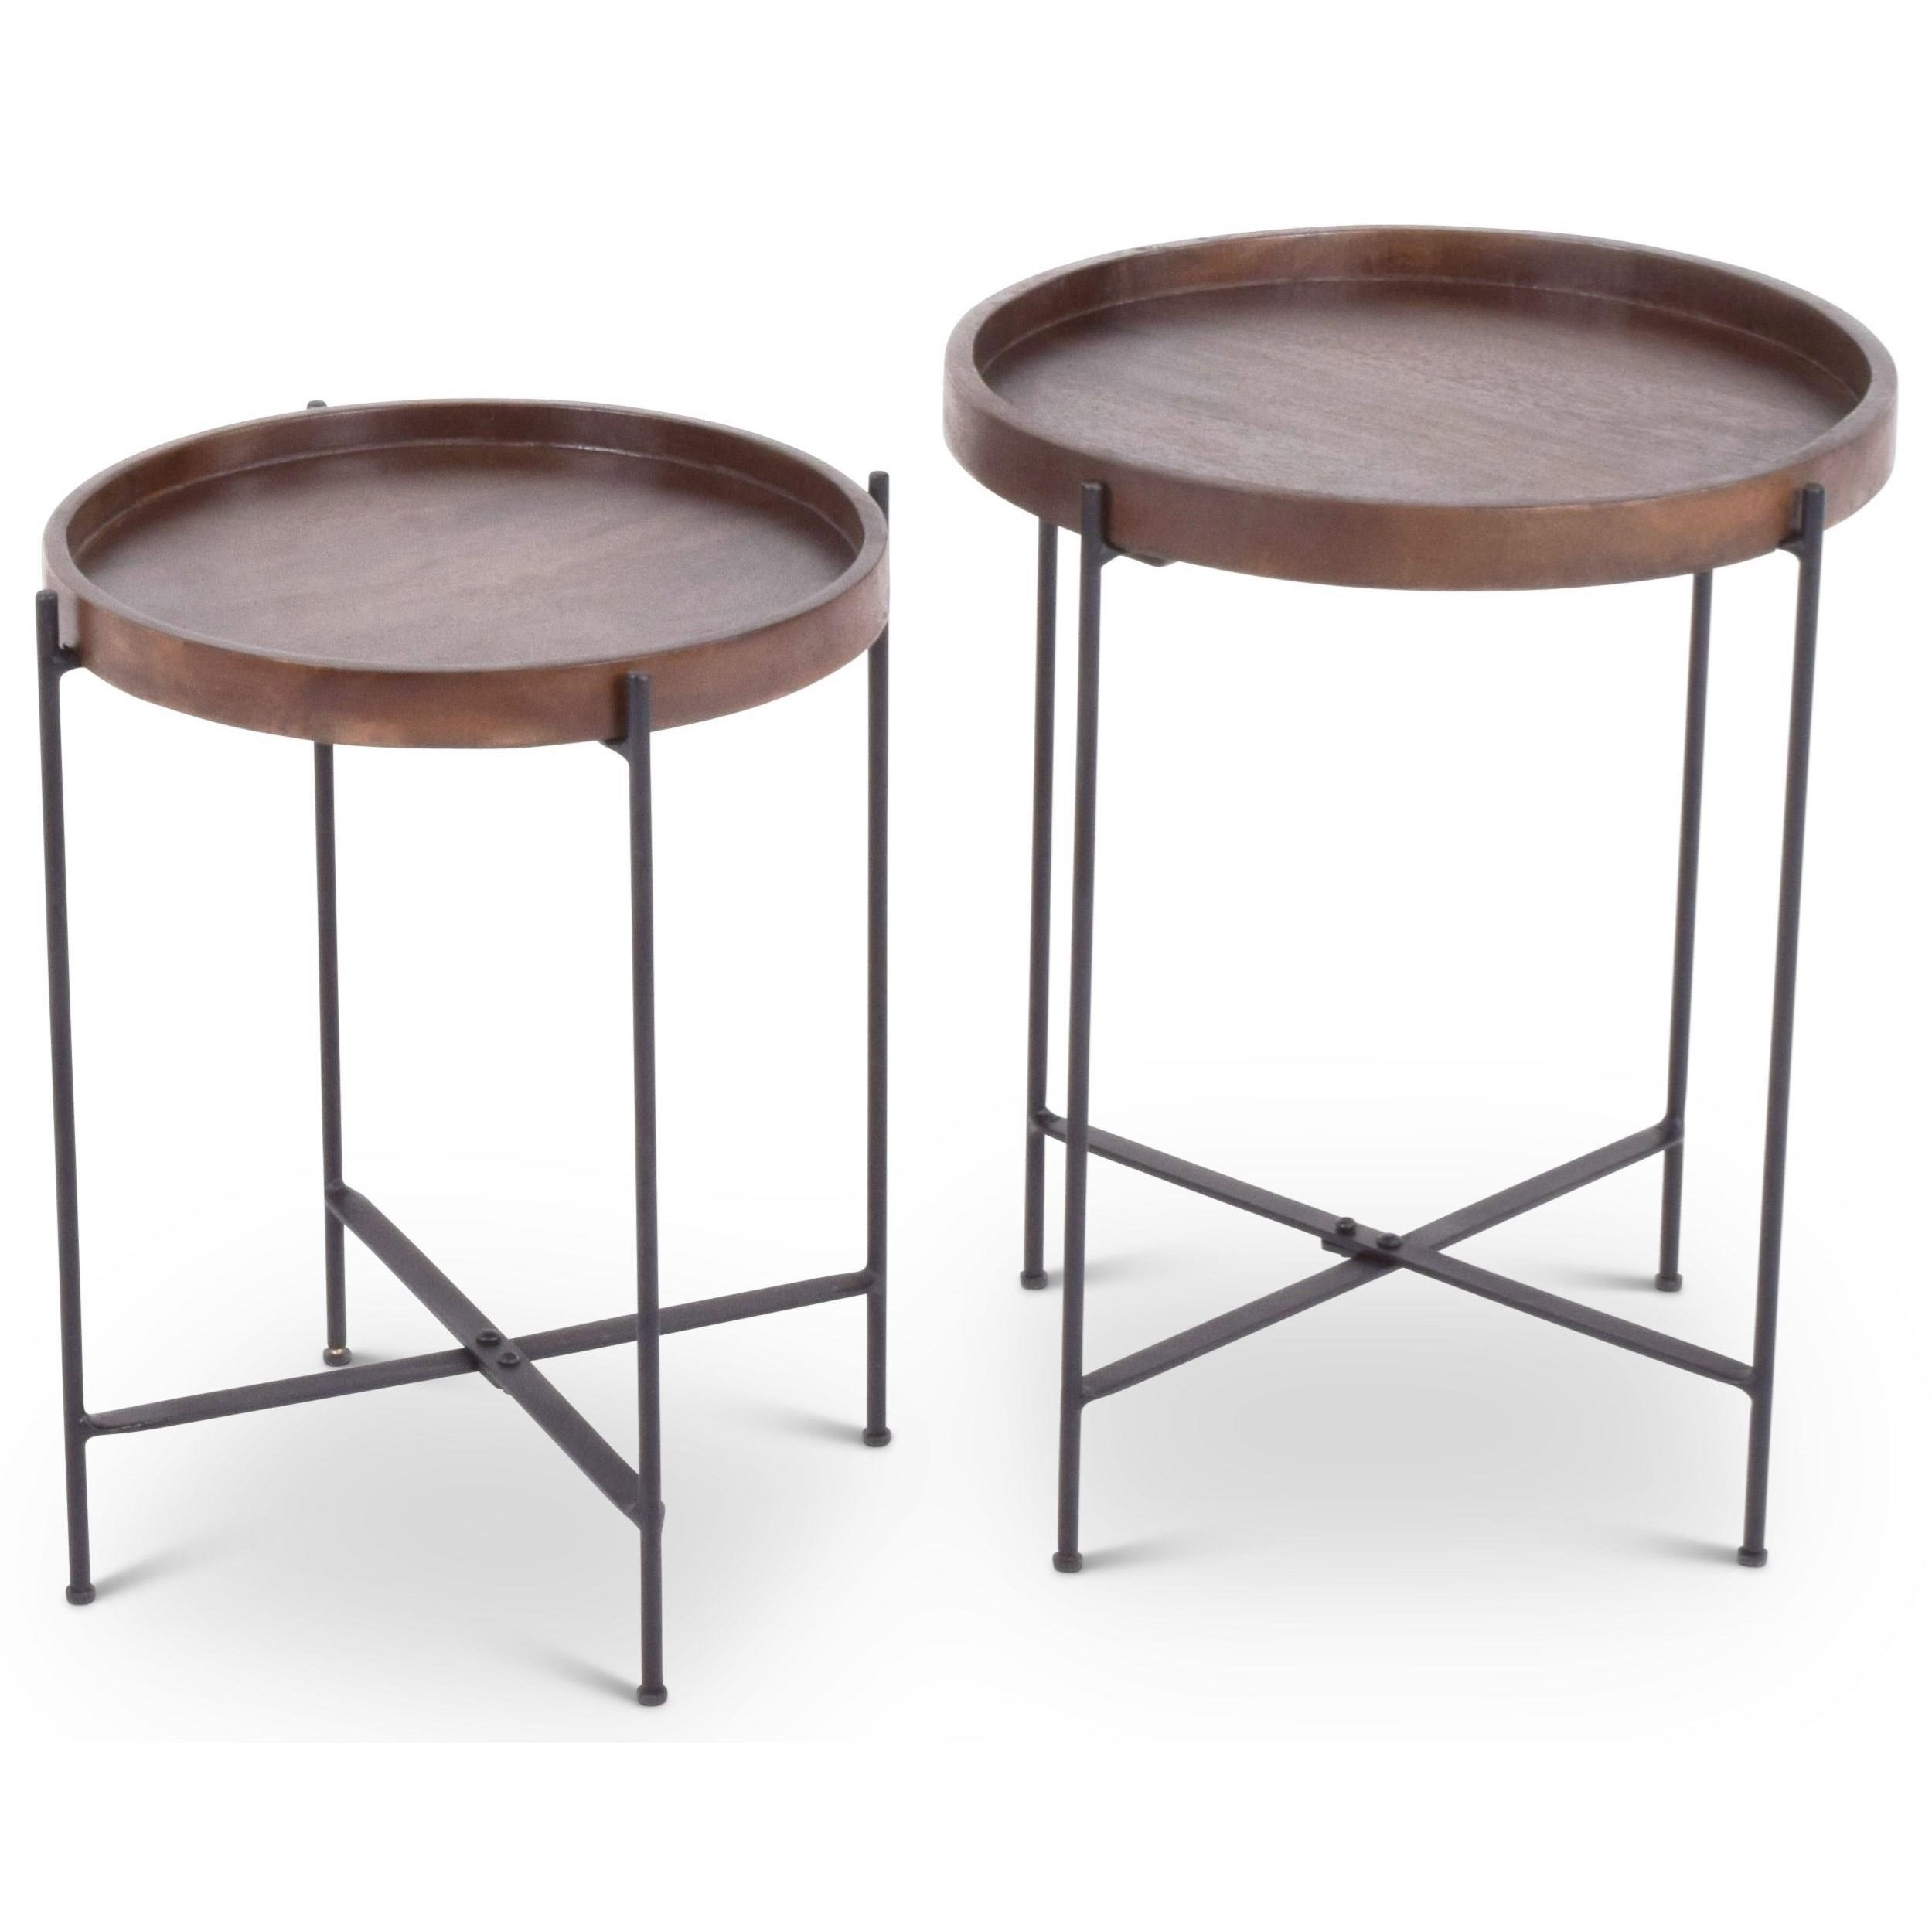 India Accents Capri Nesting Tables by Steve Silver at Walker's Furniture